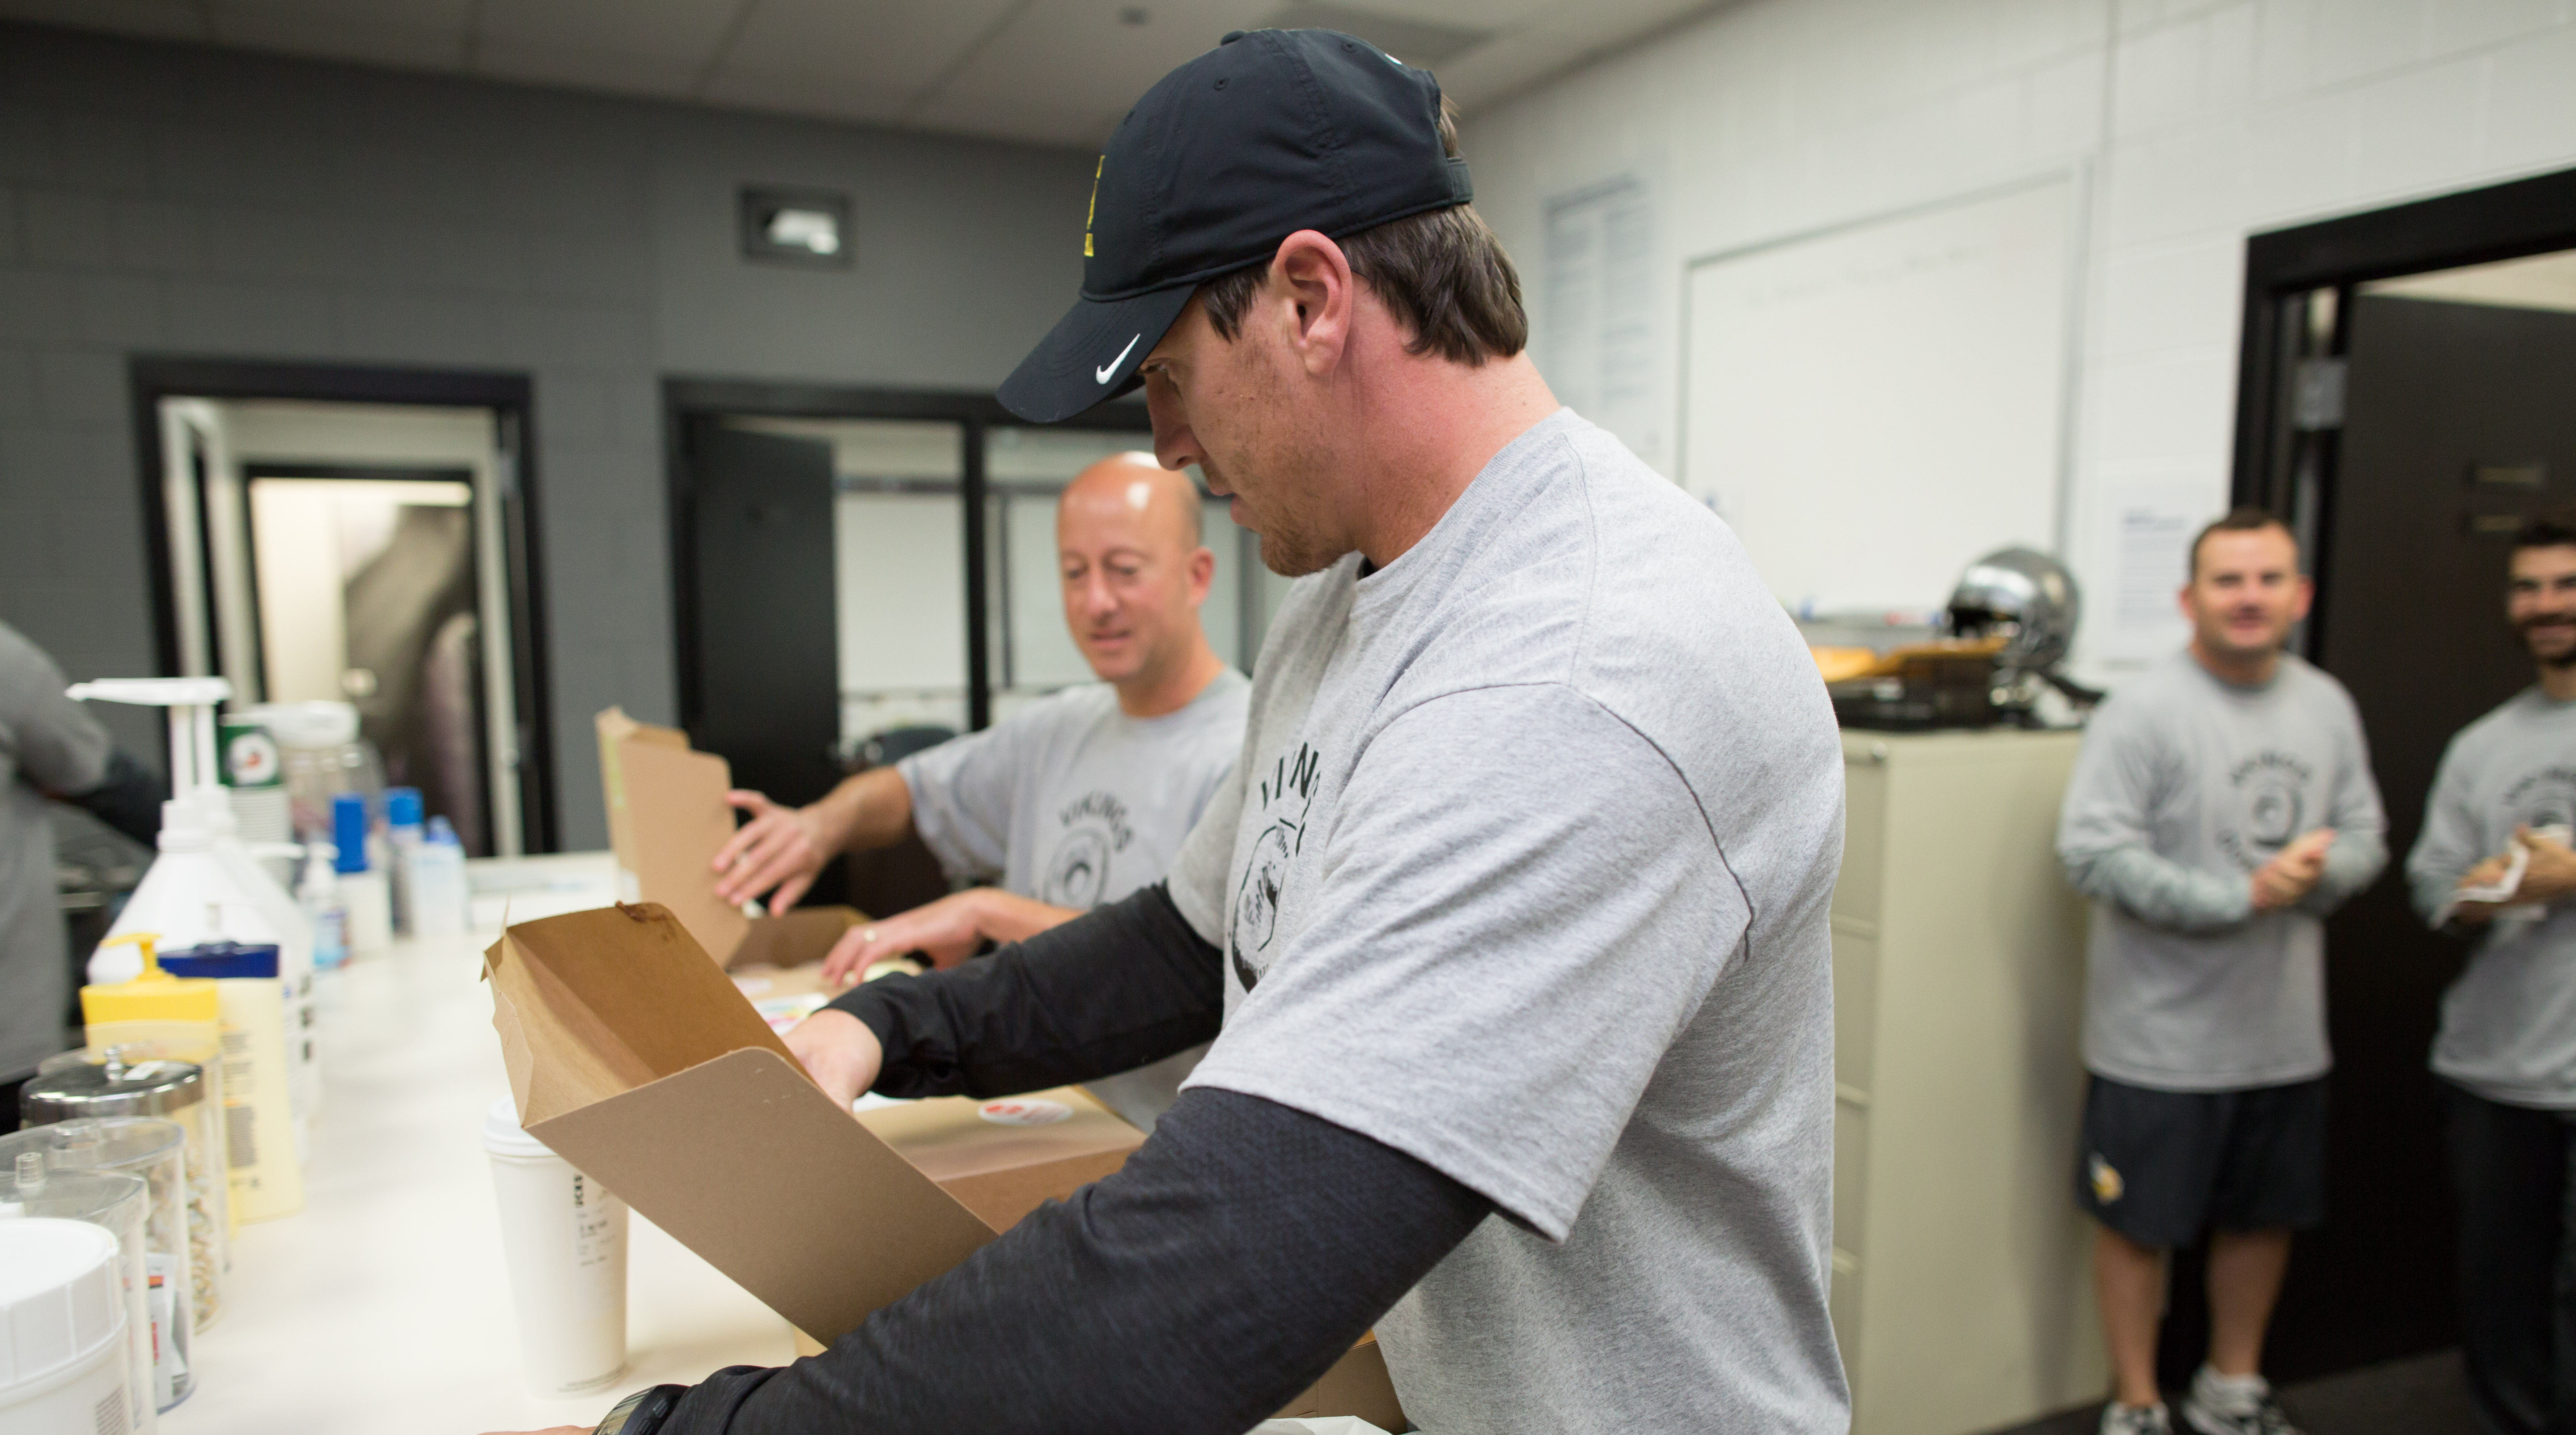 Donut Club president Eric Sugarman and board member Chad Greenway open the boxes to begin the viewing period.